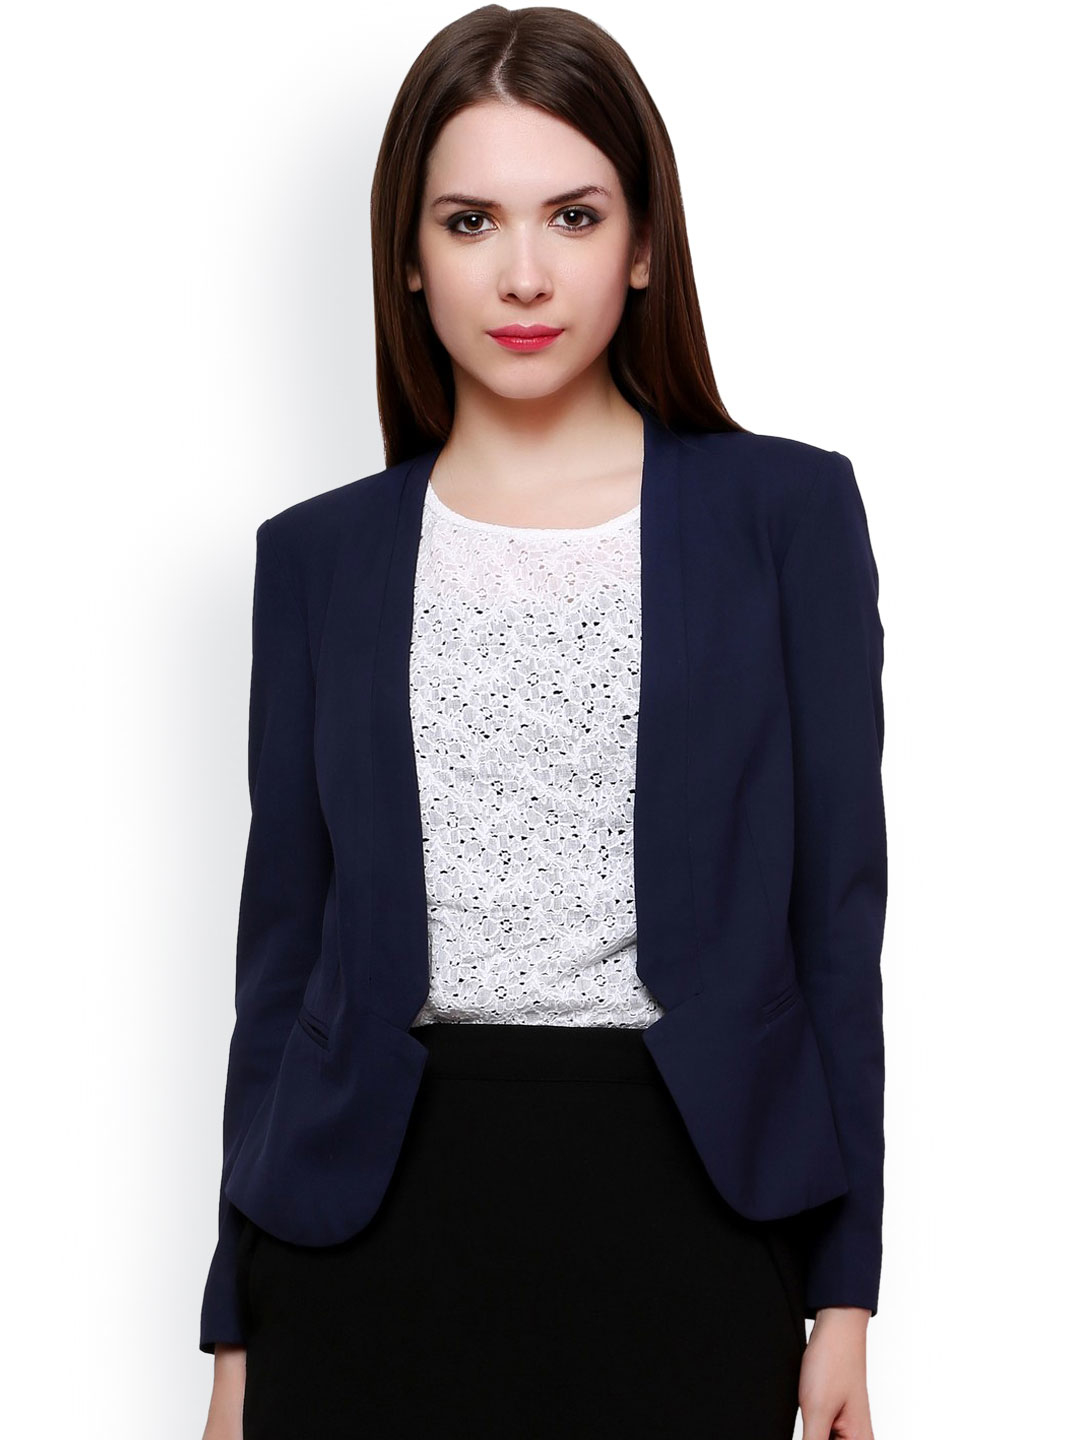 Best Interview Attire for Women